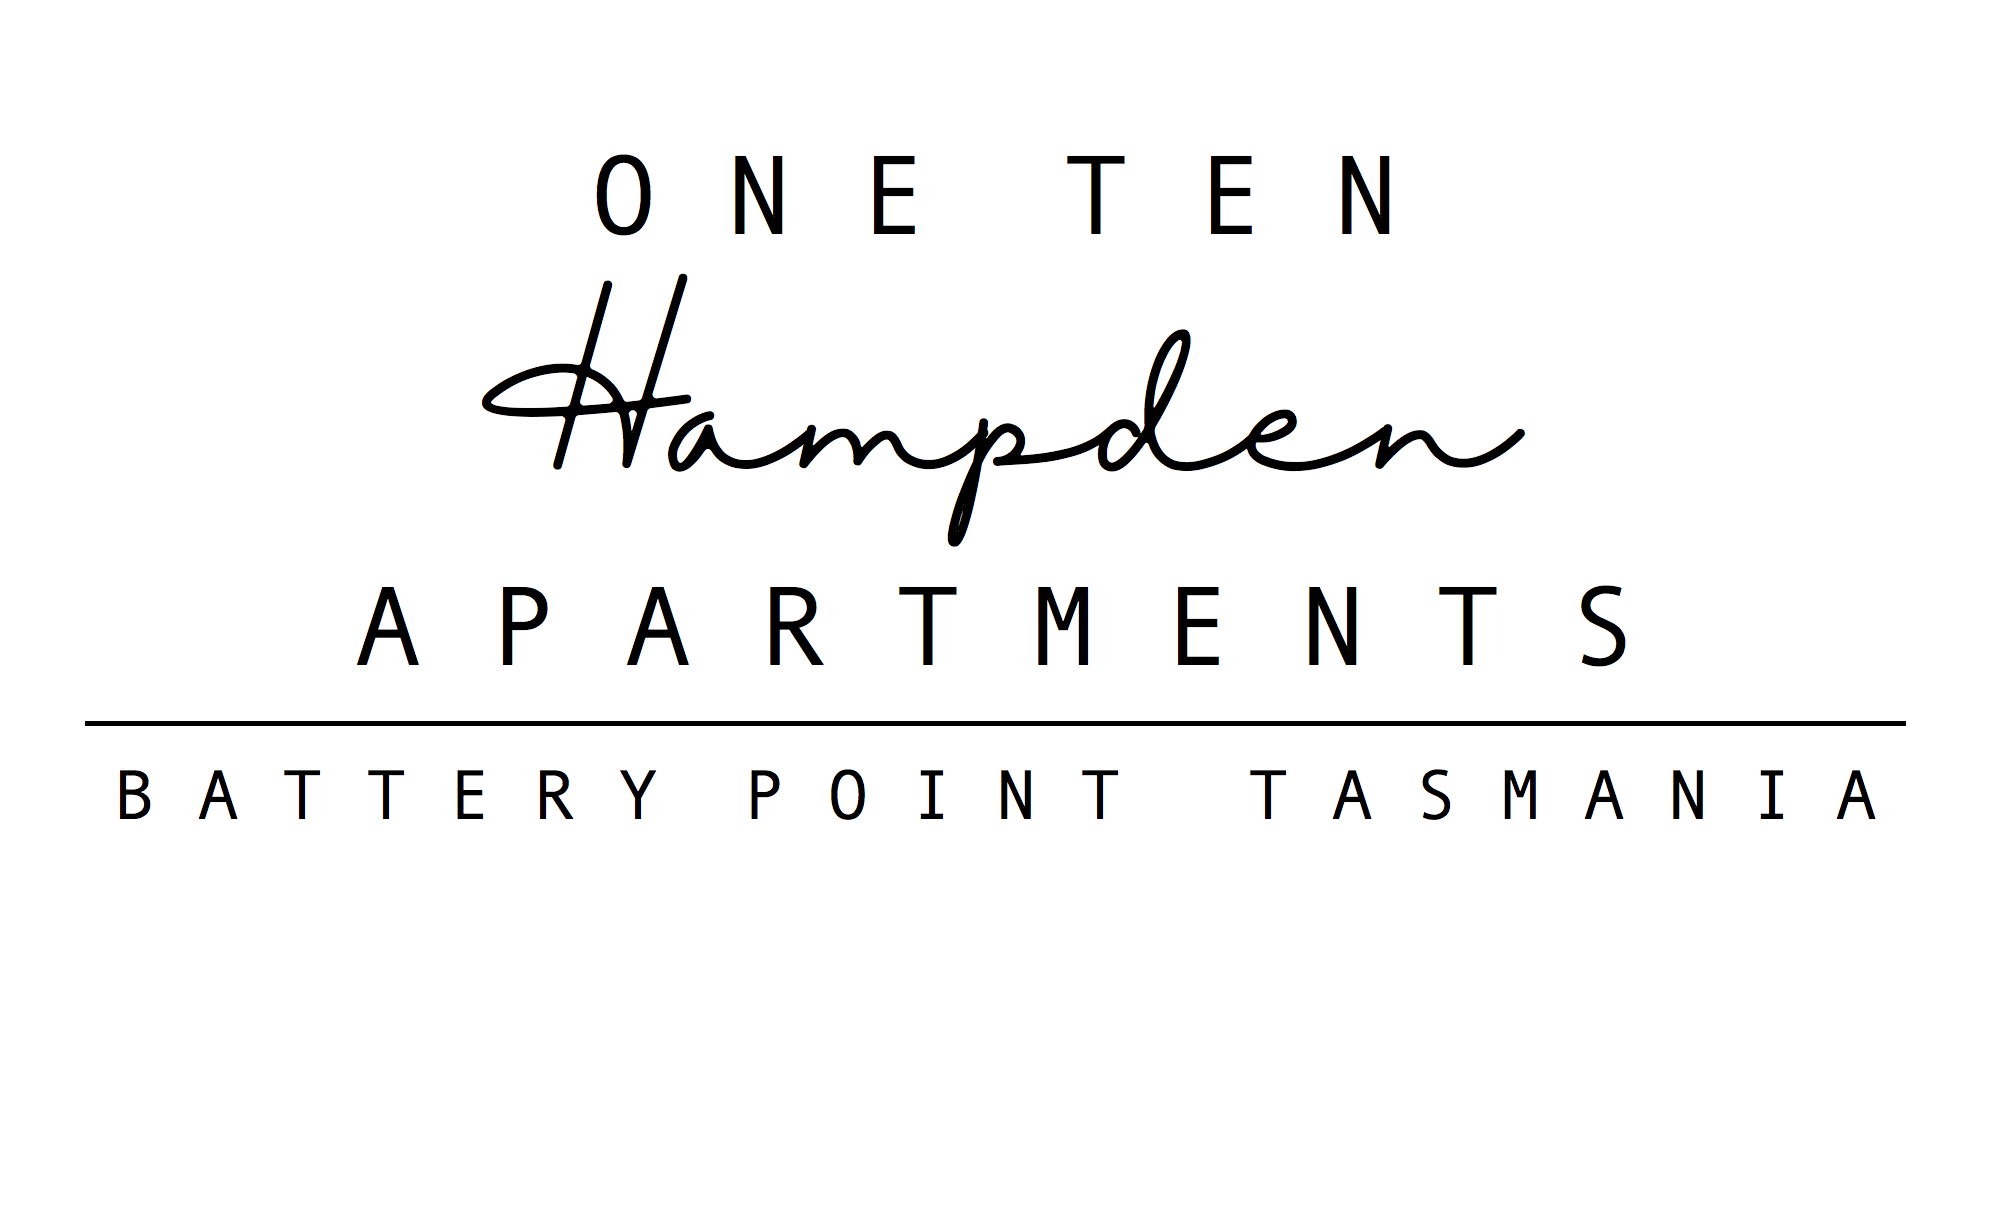 110 Hampden Apartments